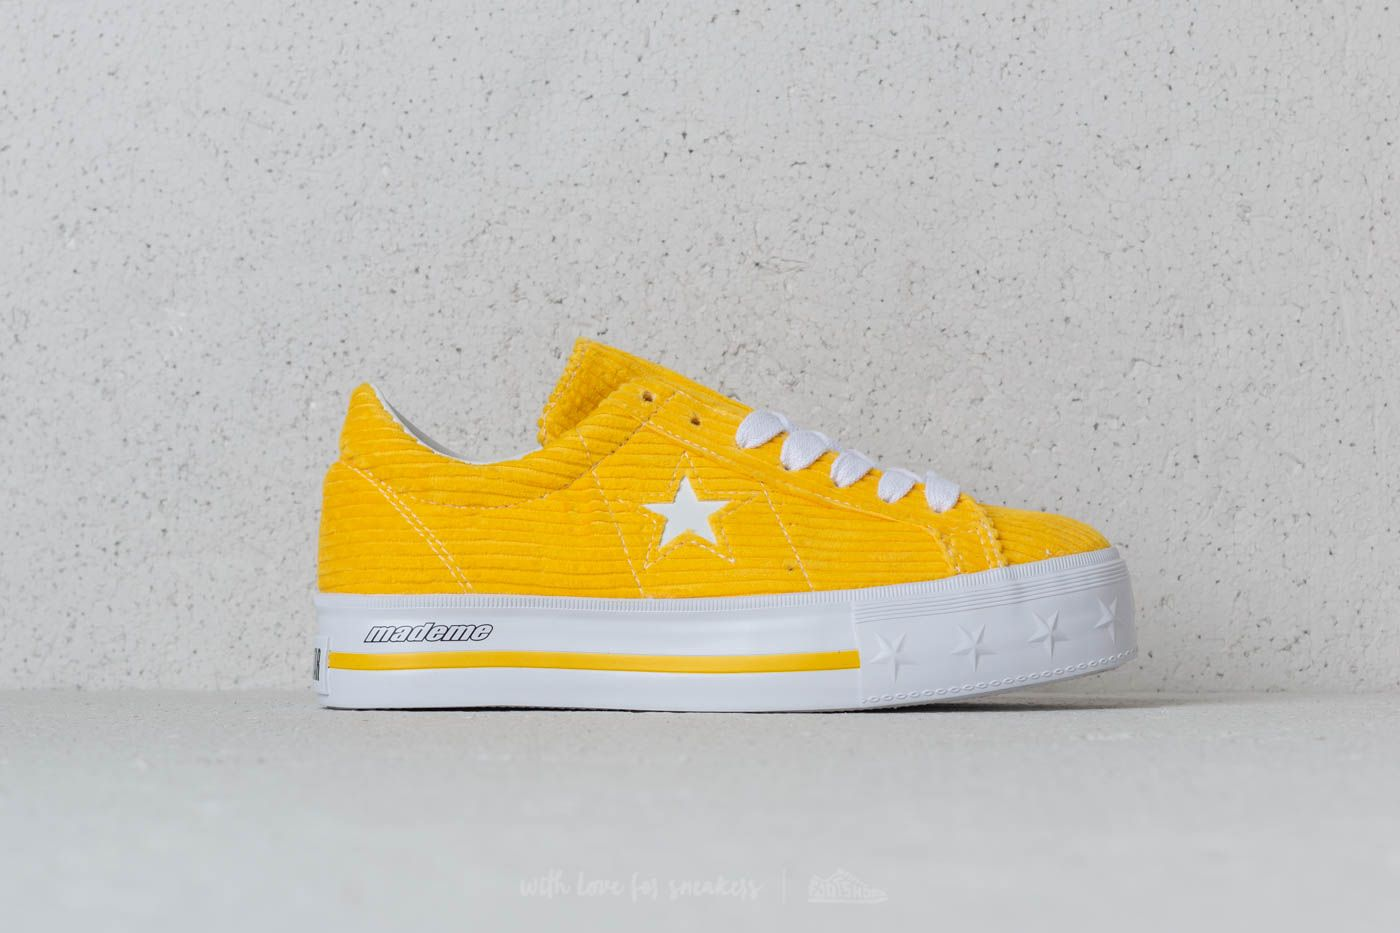 ffe8ac448a1131 Converse x Mademe One Star Platform OX Vibrant Yellow at a great price 81 €  buy